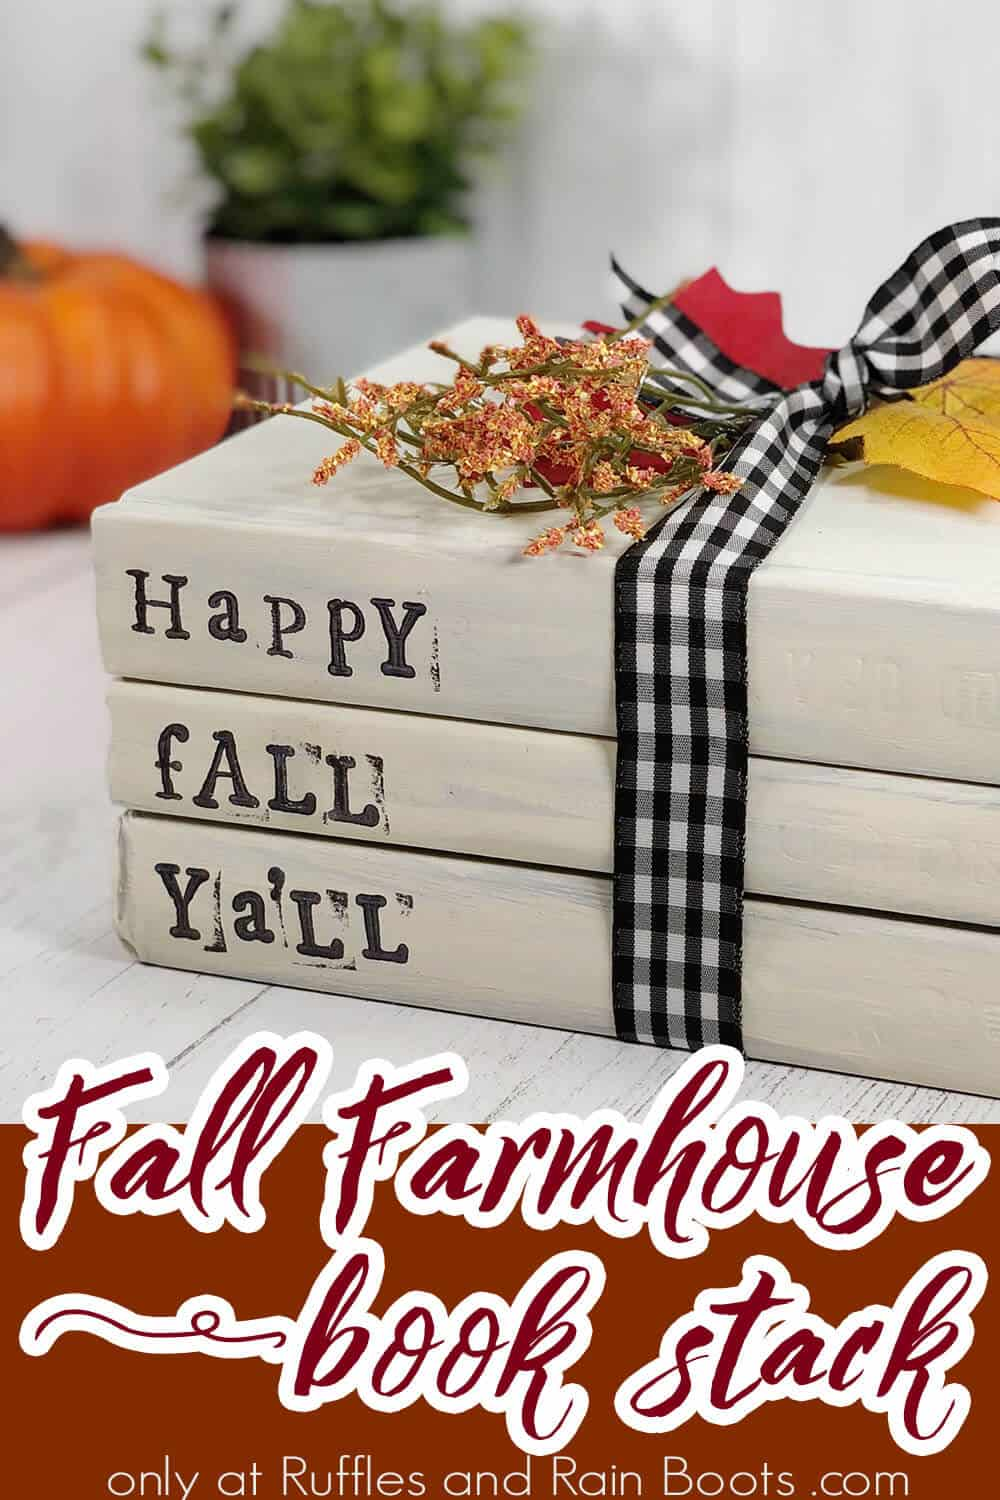 fall book stack craft from the dollar store with text which reads fall farmhouse book stack